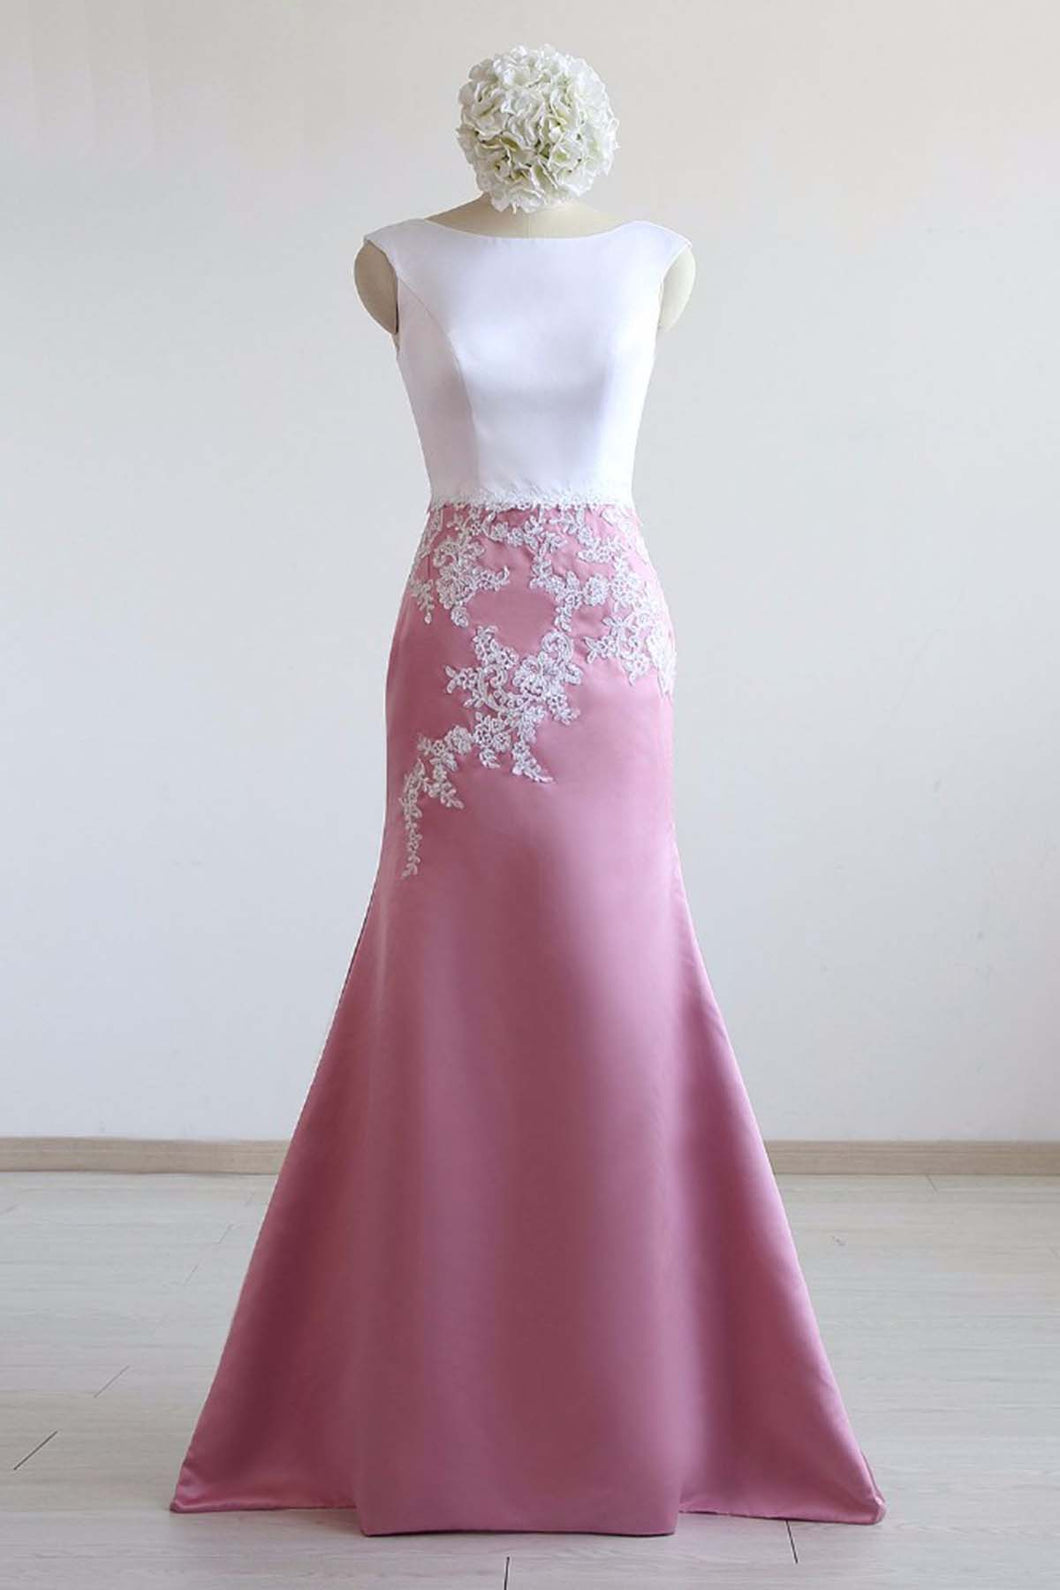 Pink and White Satin Long Mermaid Prom Dress With Applique